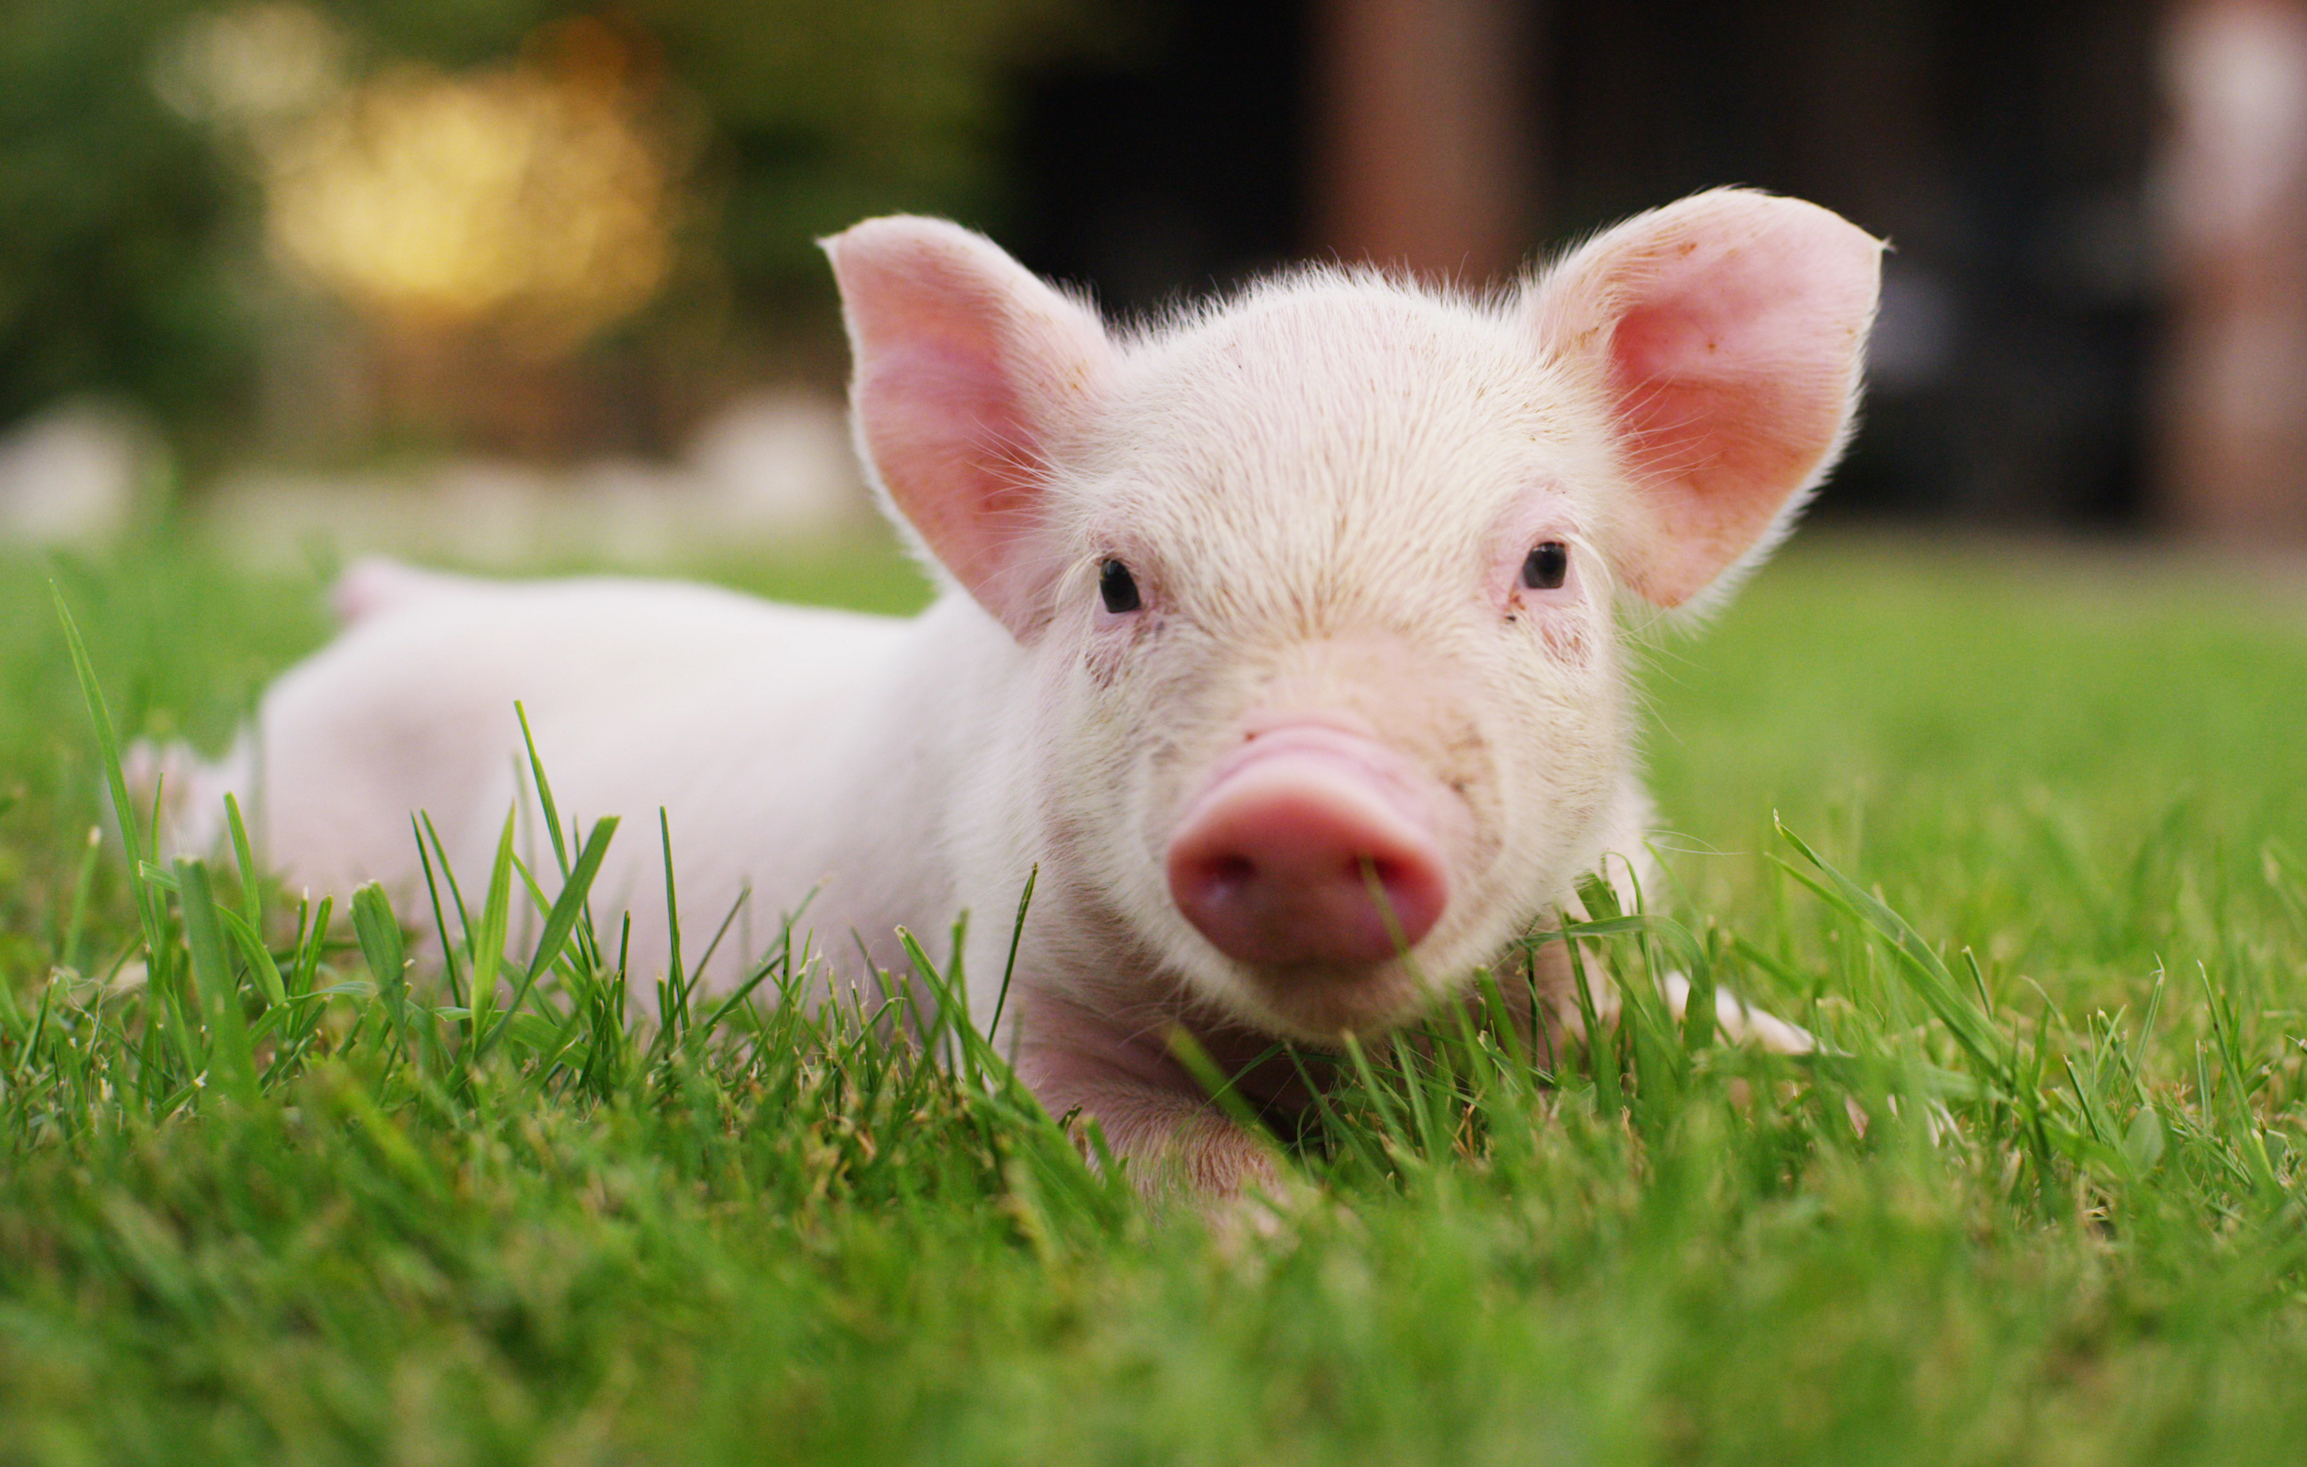 Scientists have used a gene-editing technique to create pigs that are resistant to one of the world's most costly animal diseases.